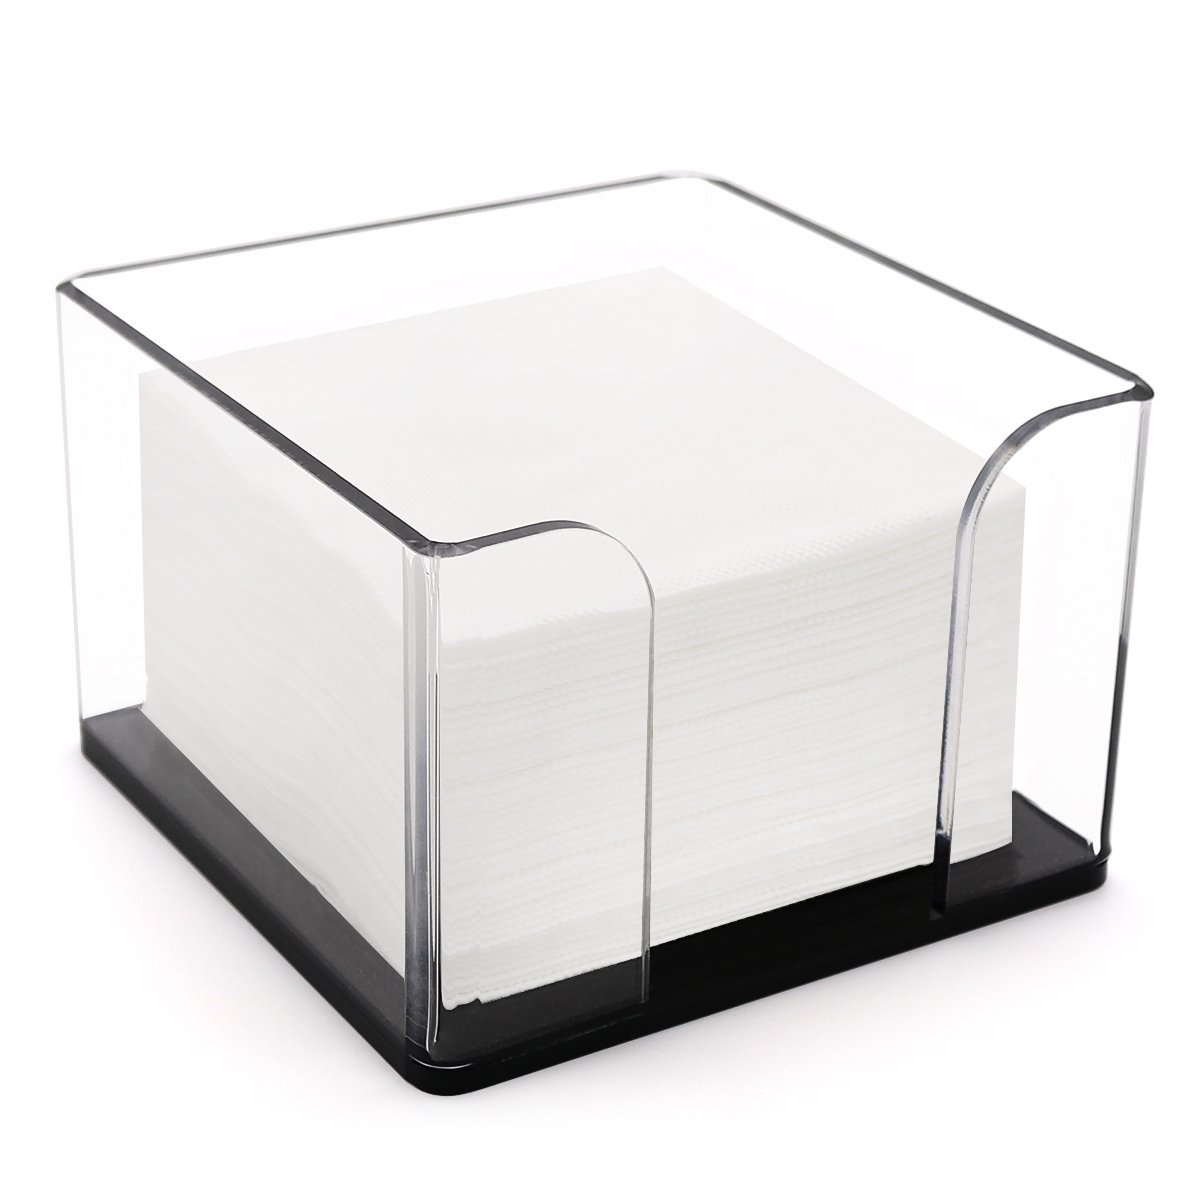 Napkin Holder, Clear Acrylic Cocktail Napkin Holder Stand for Restaurant Kitchen,Bar,Party,Home,Office Tables DYCacrlic